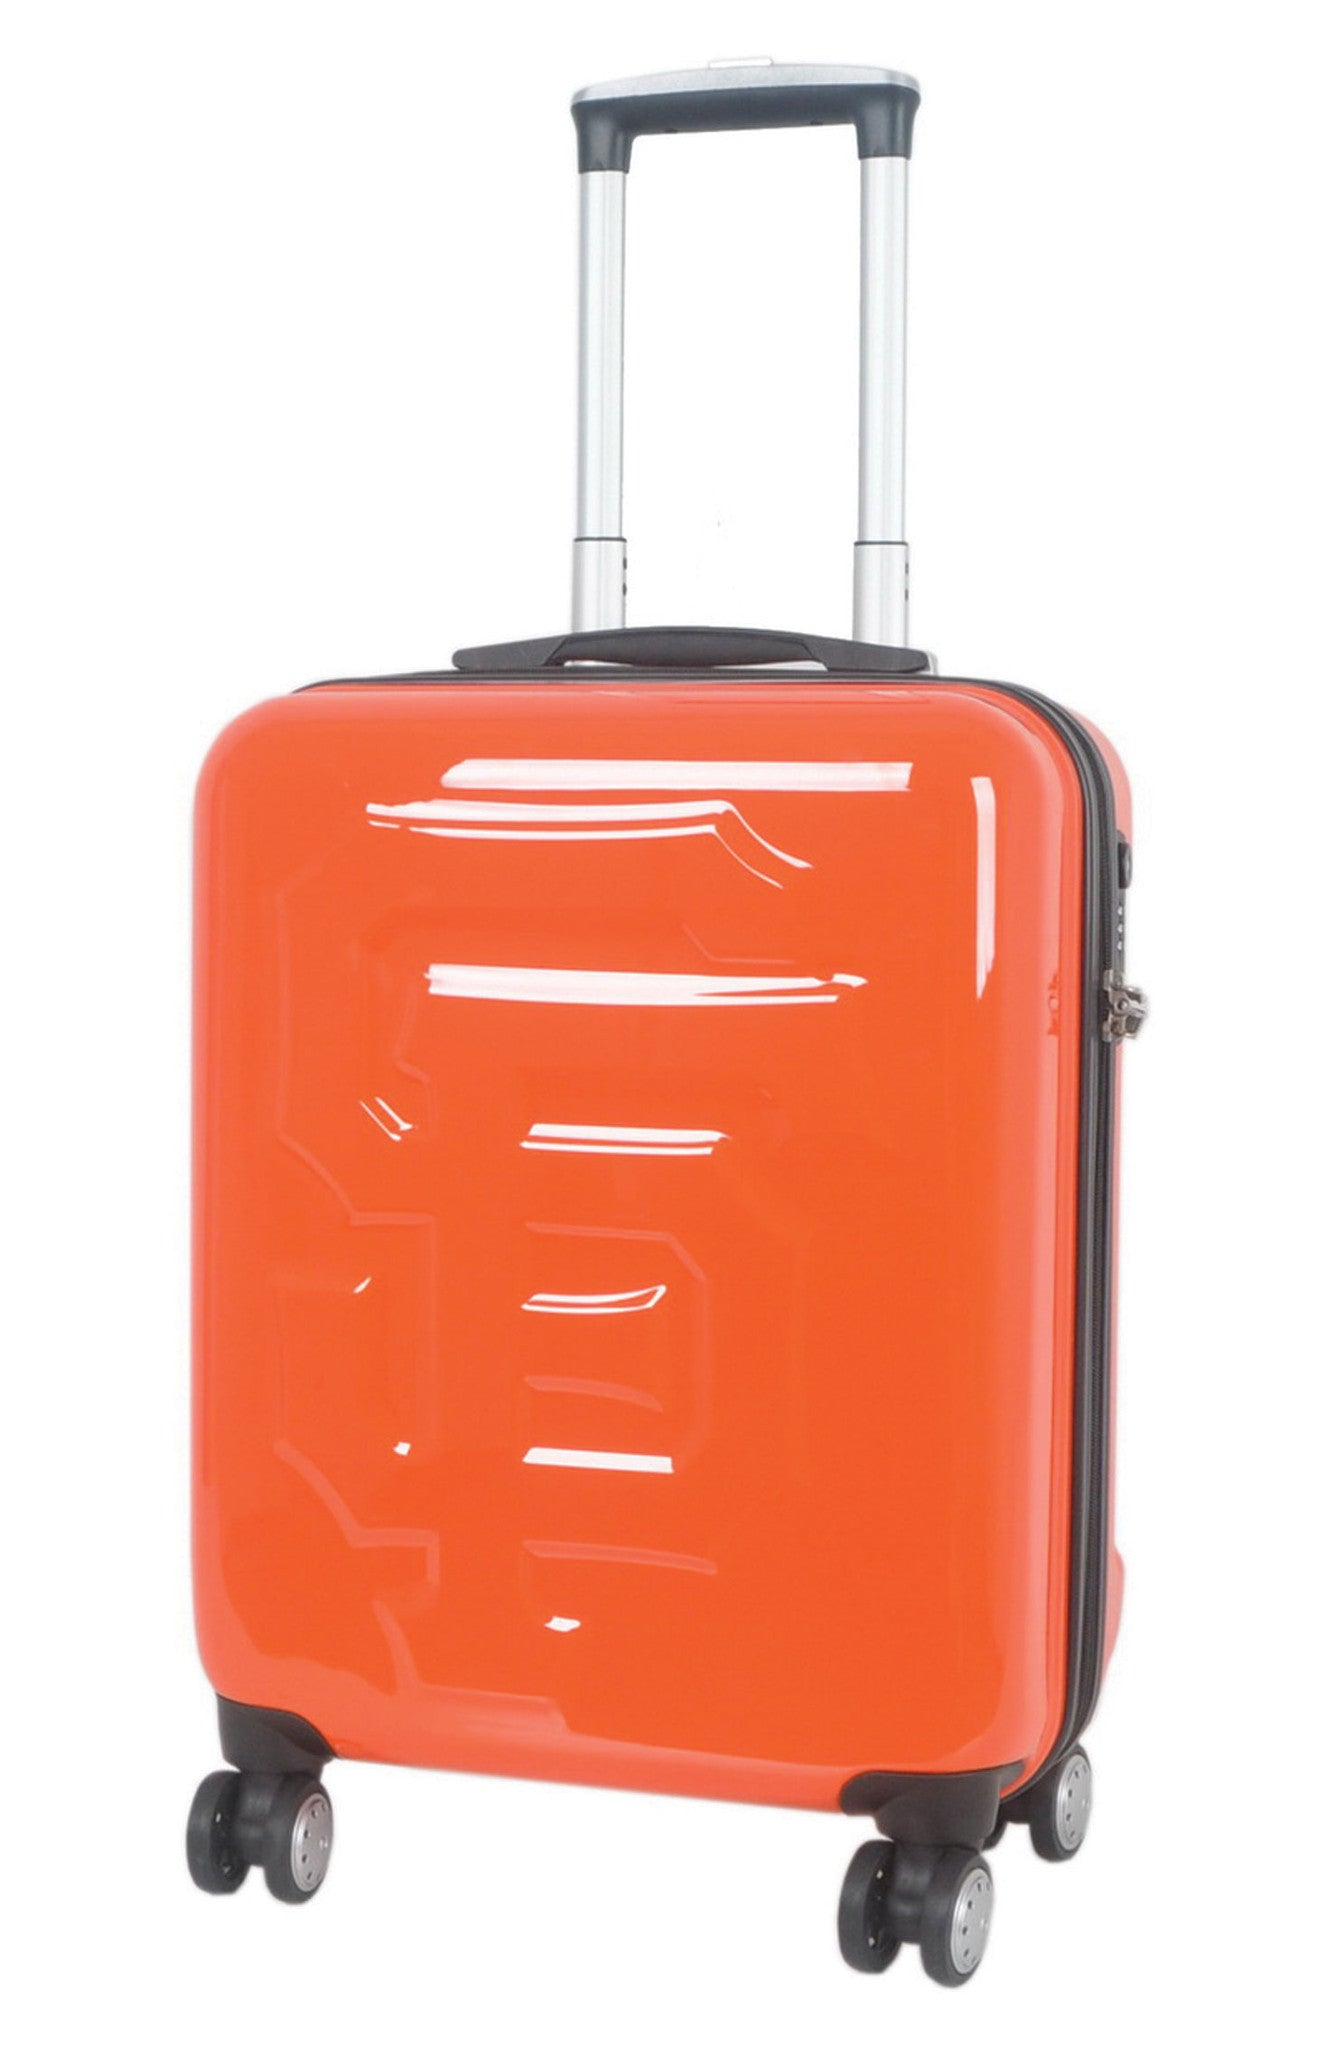 "San Francisco Giants, 19"" Premium Molded Luggage by Kaybull #SF-19PCF - OBM Distribution, Inc."